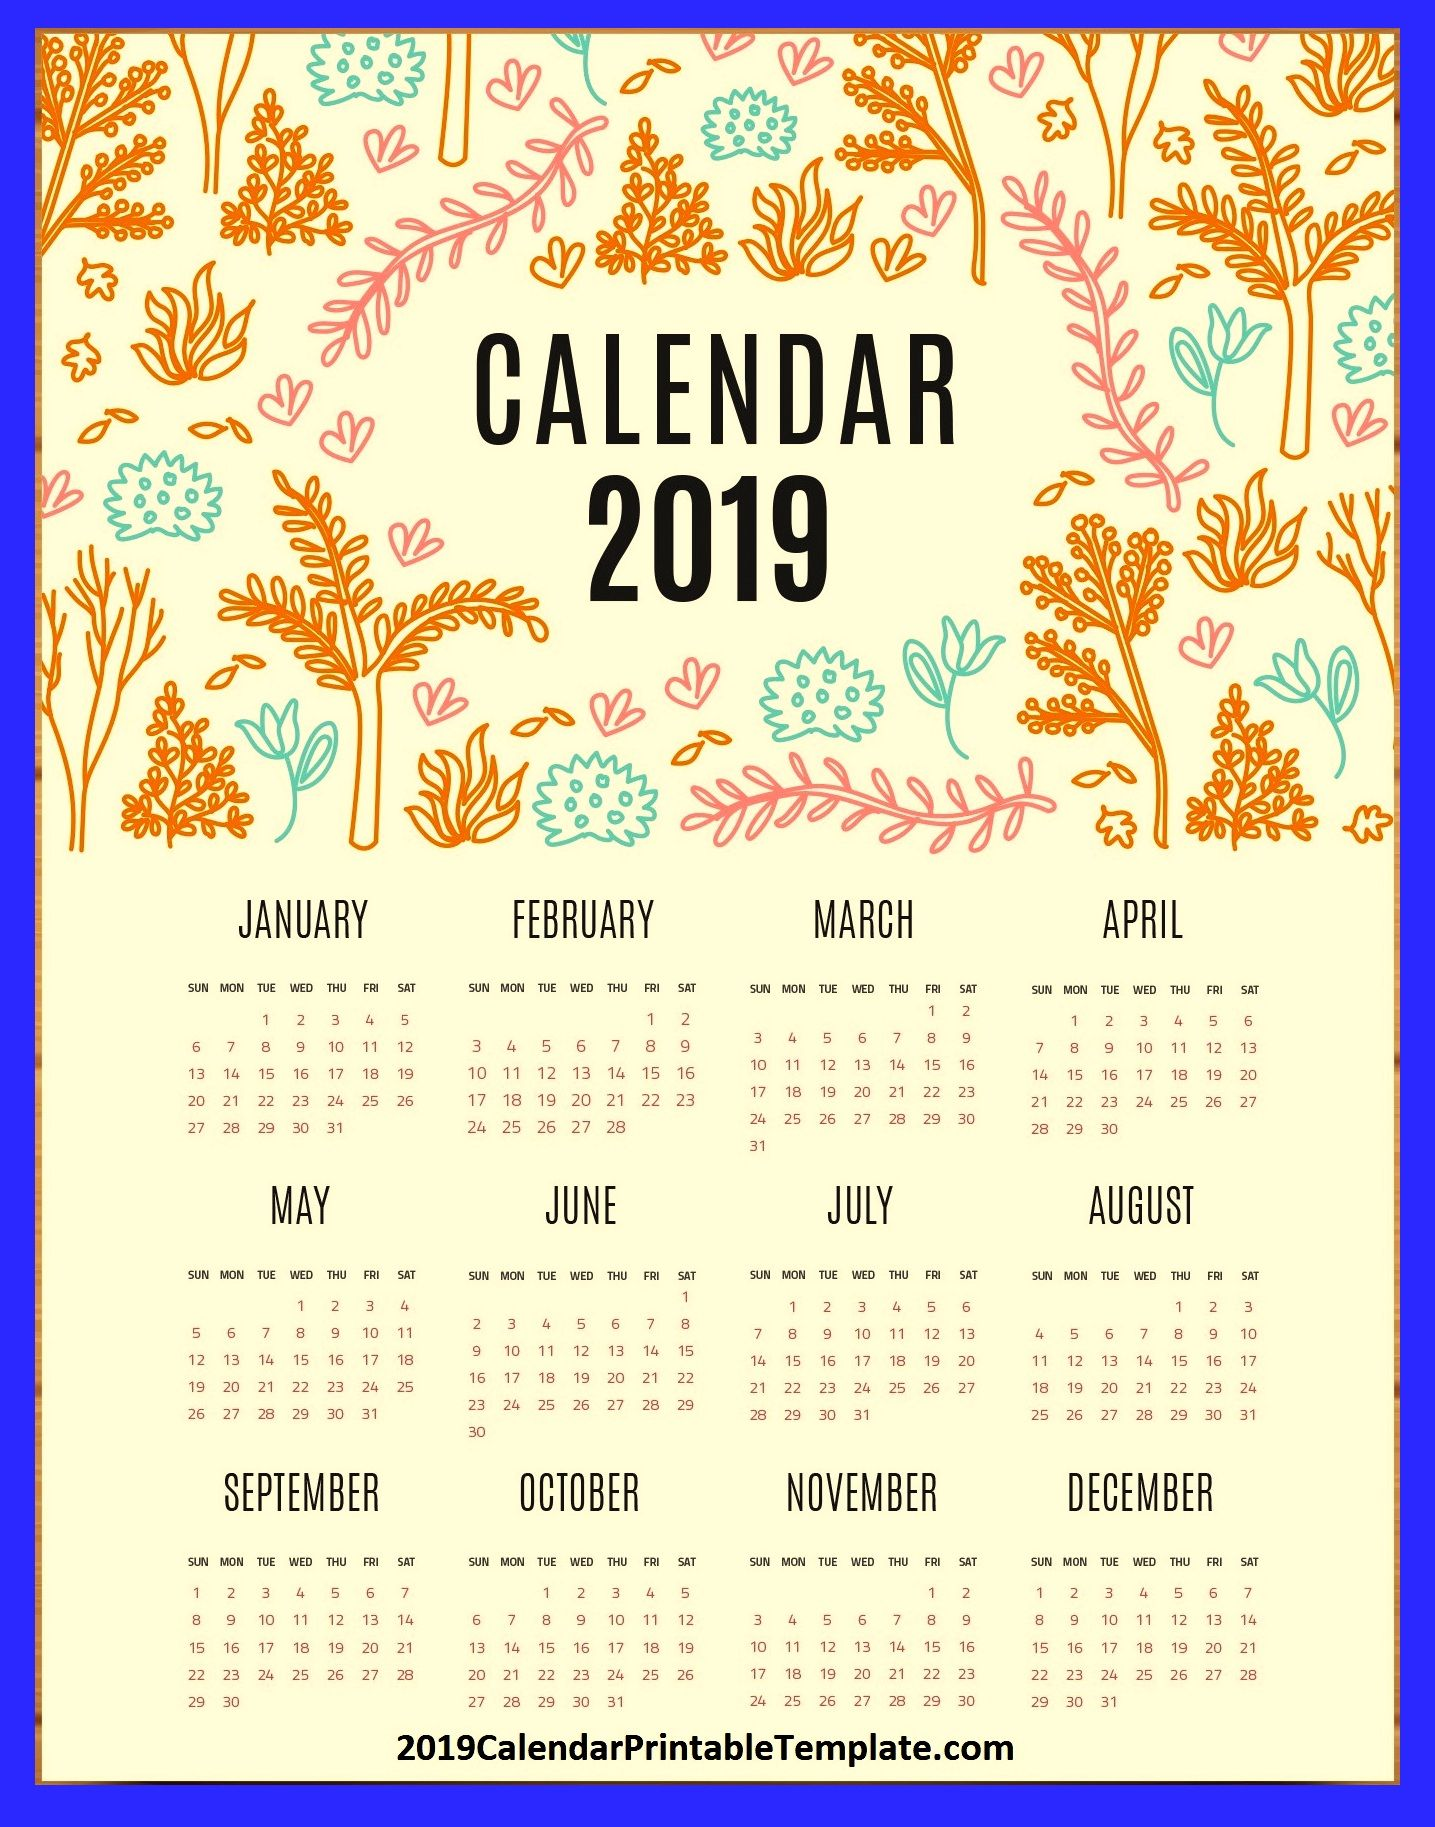 pin by 2019calendarprintabletemplate on 2019 calendar usa in 2018 pinterest